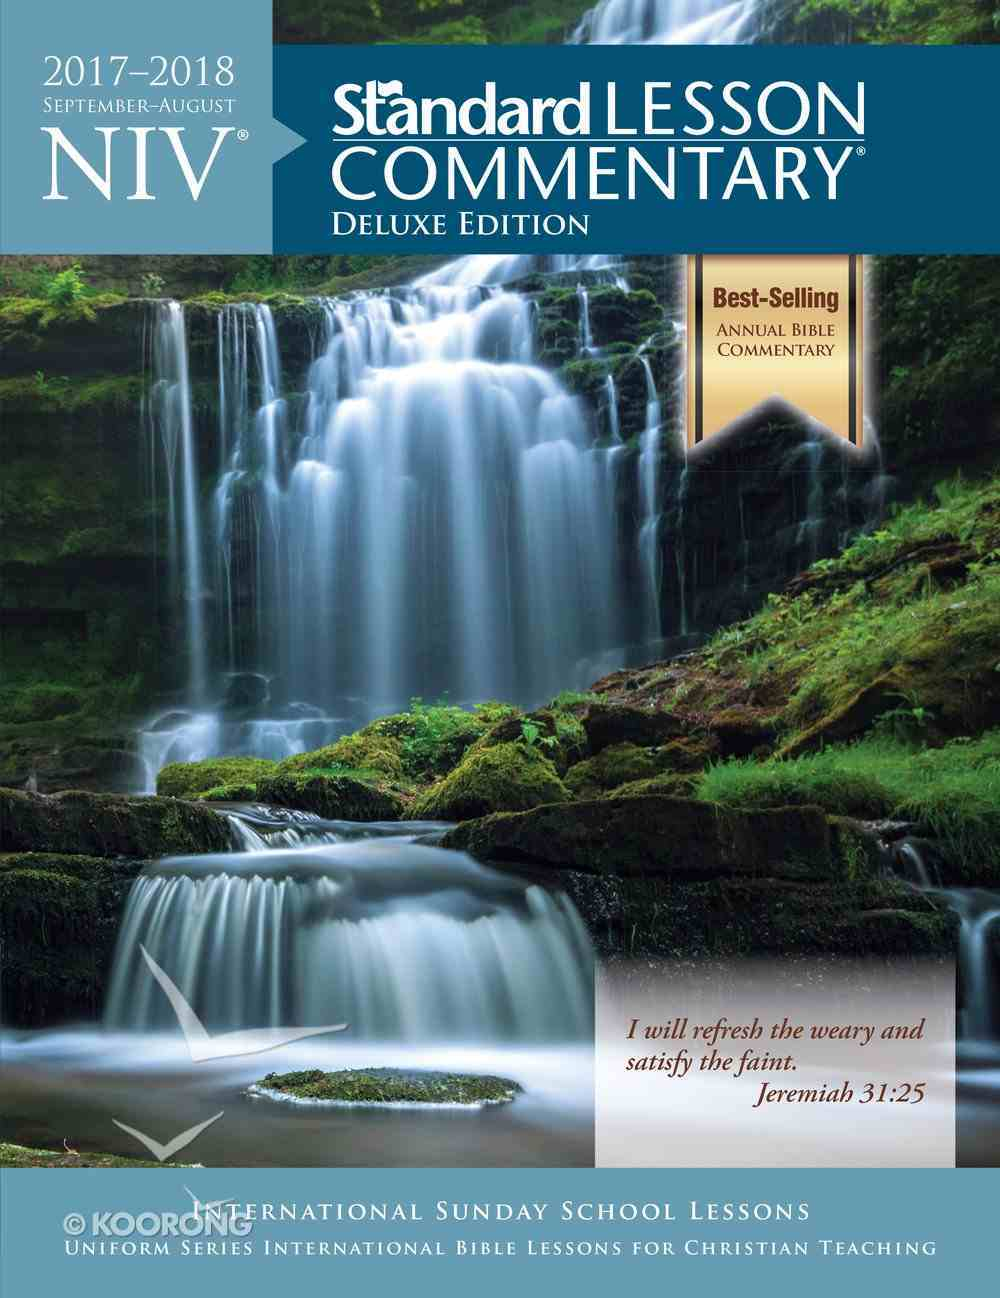 NIV Standard Lesson Commentary 2017-2018 Deluxe Edition Paperback